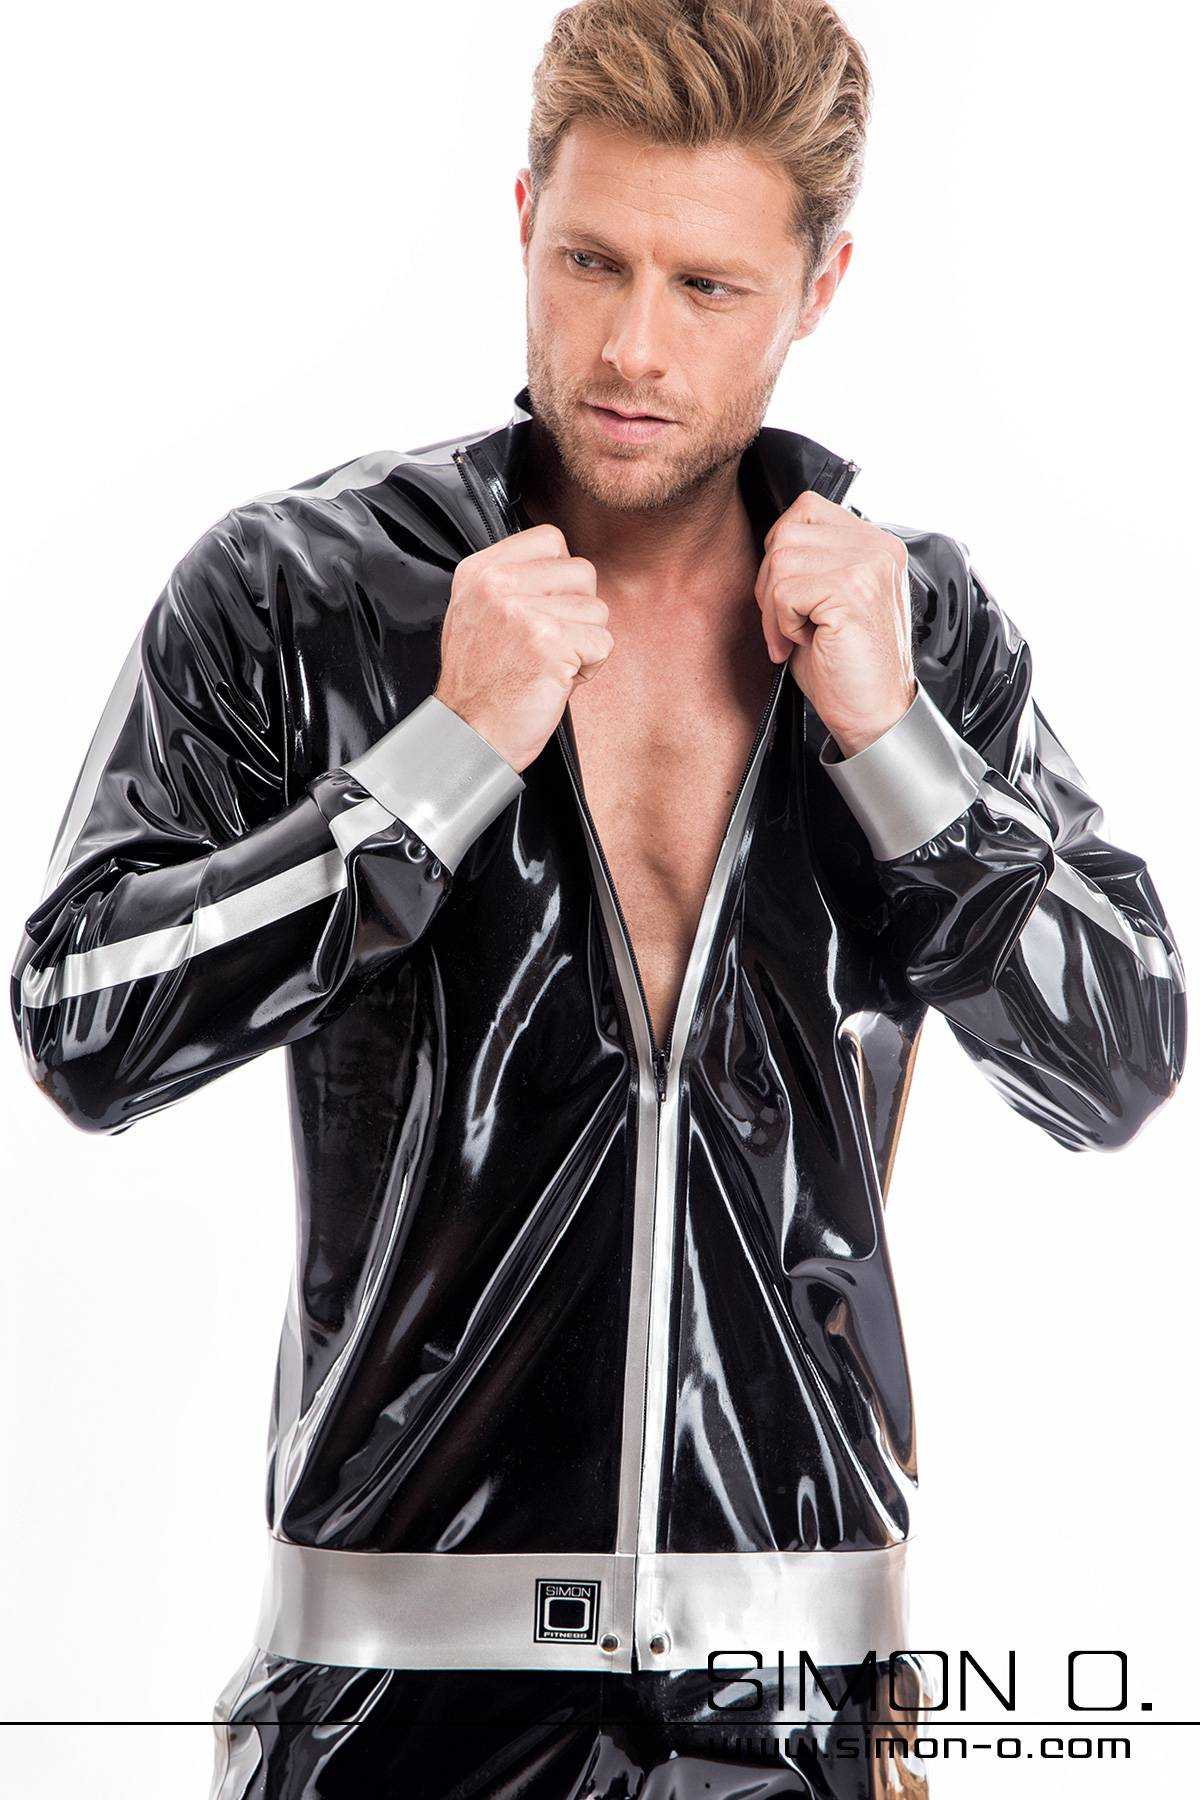 A man wears a shiny latex jacket with pockets in black combined with silver